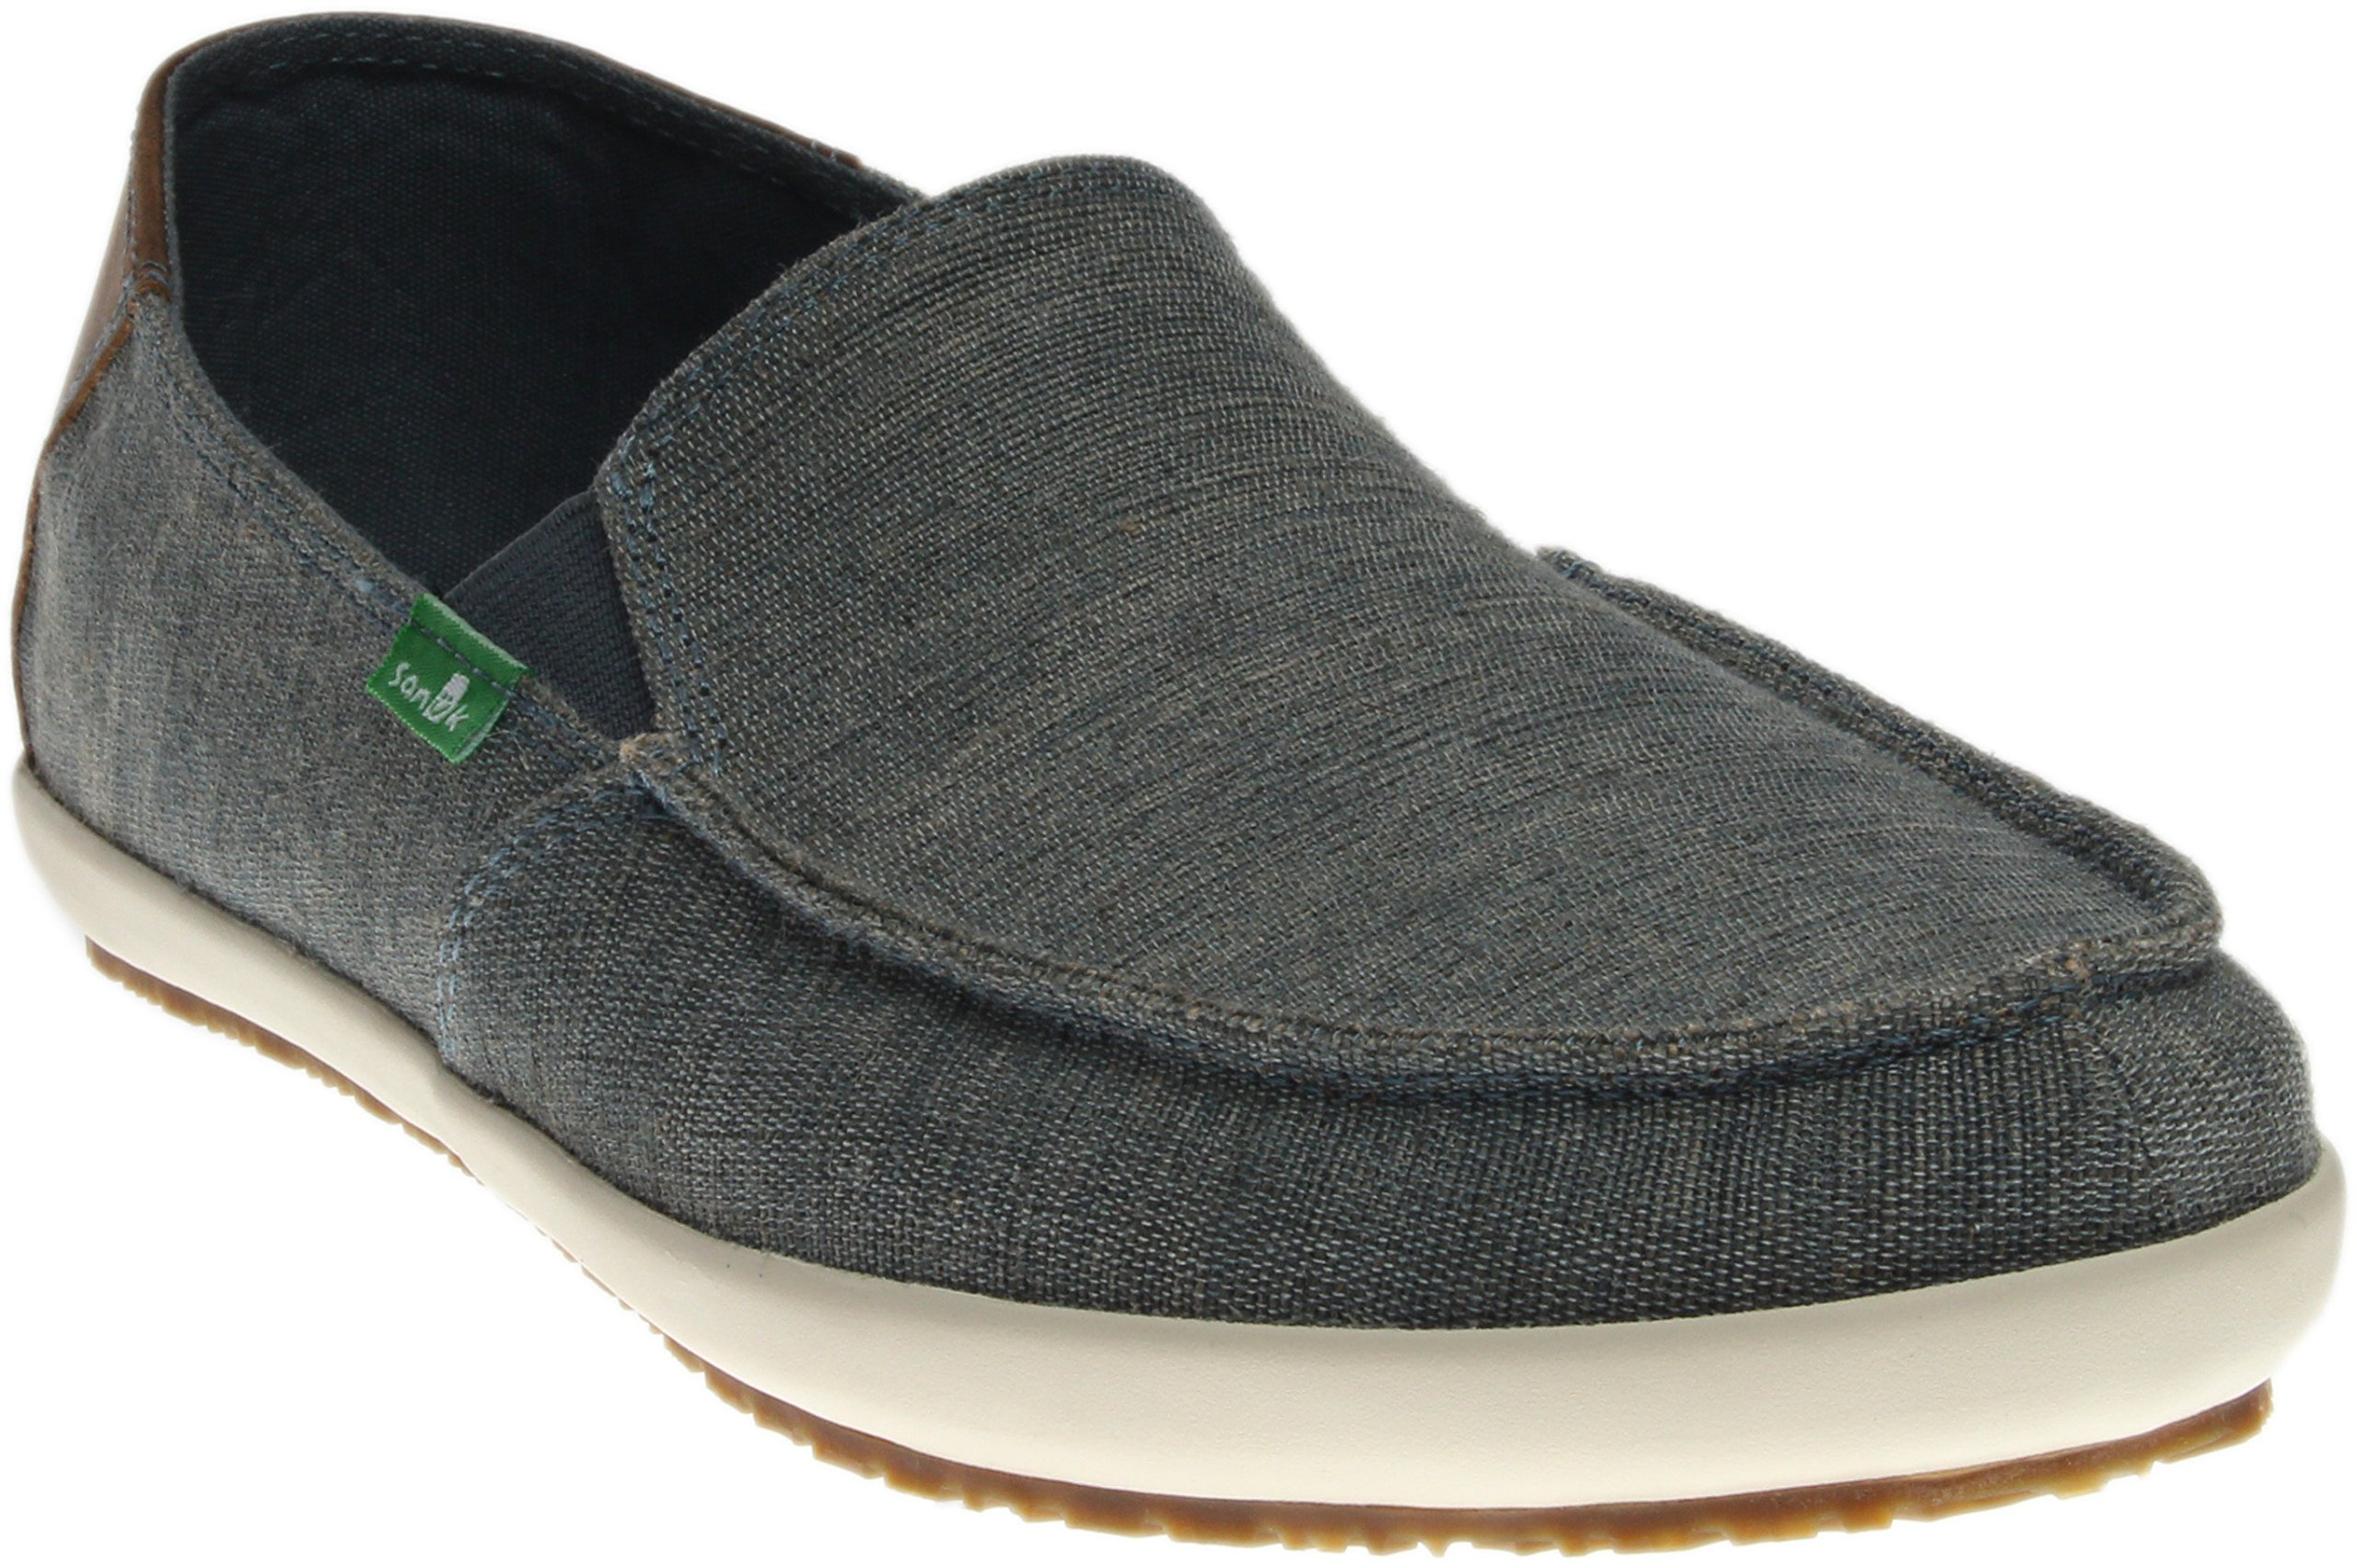 Sanuk Men's M Casa Vintage Slip-On Loafer, Blue, 10 M US